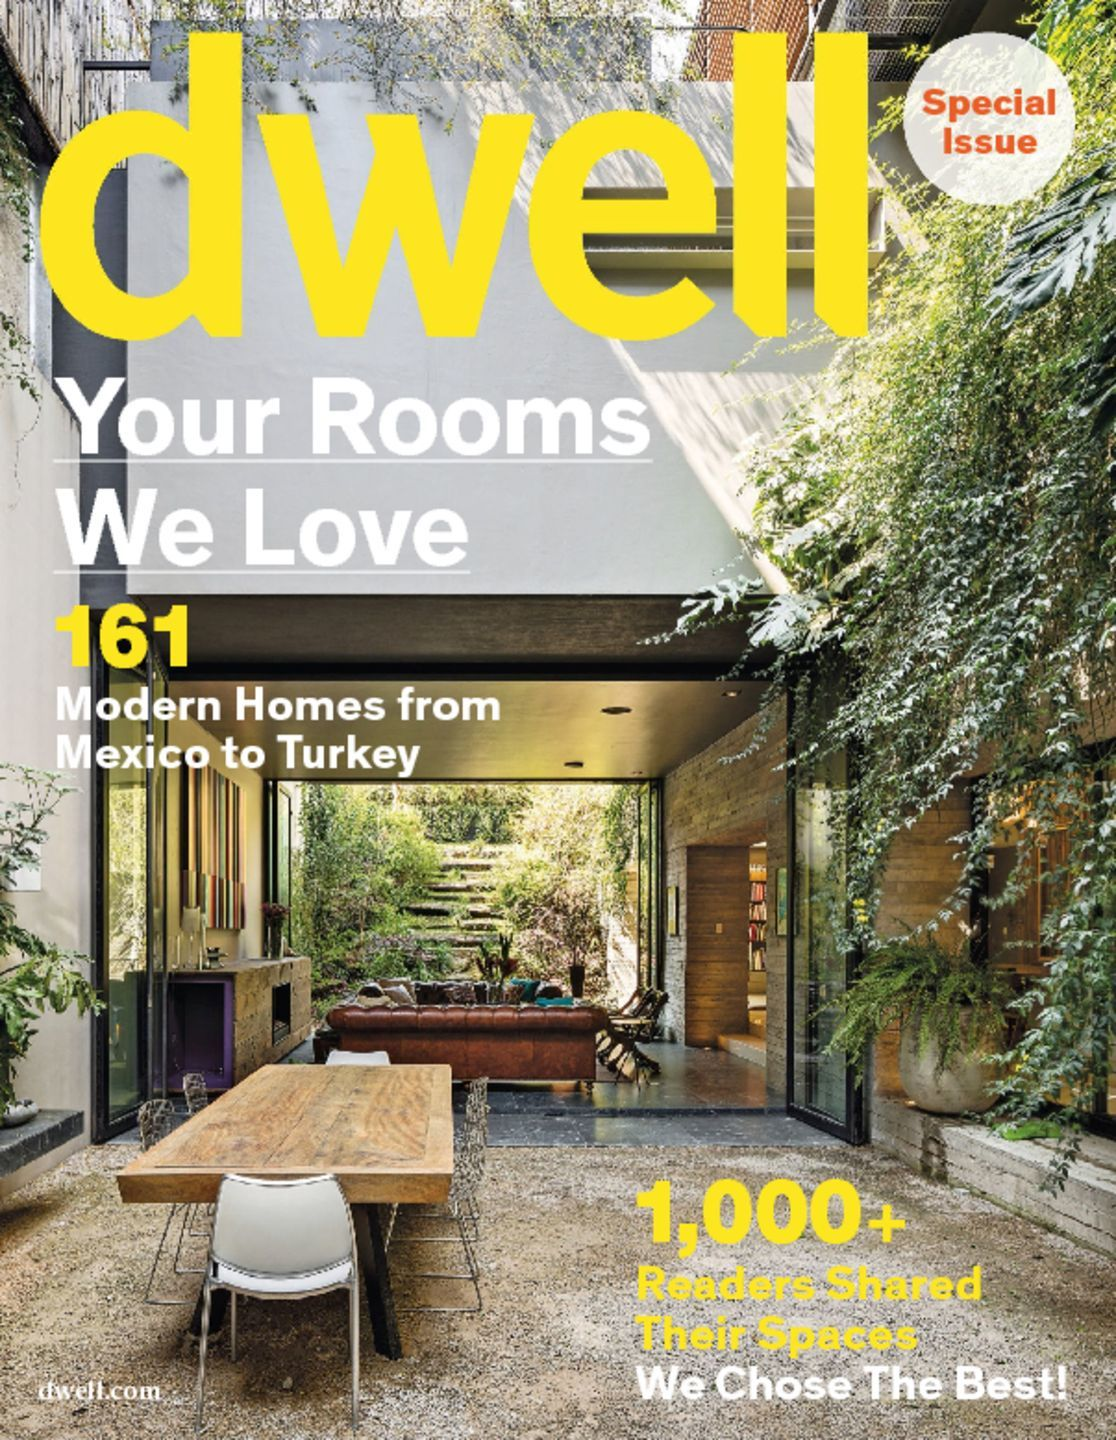 Dwell – Your Rooms We Love Digital